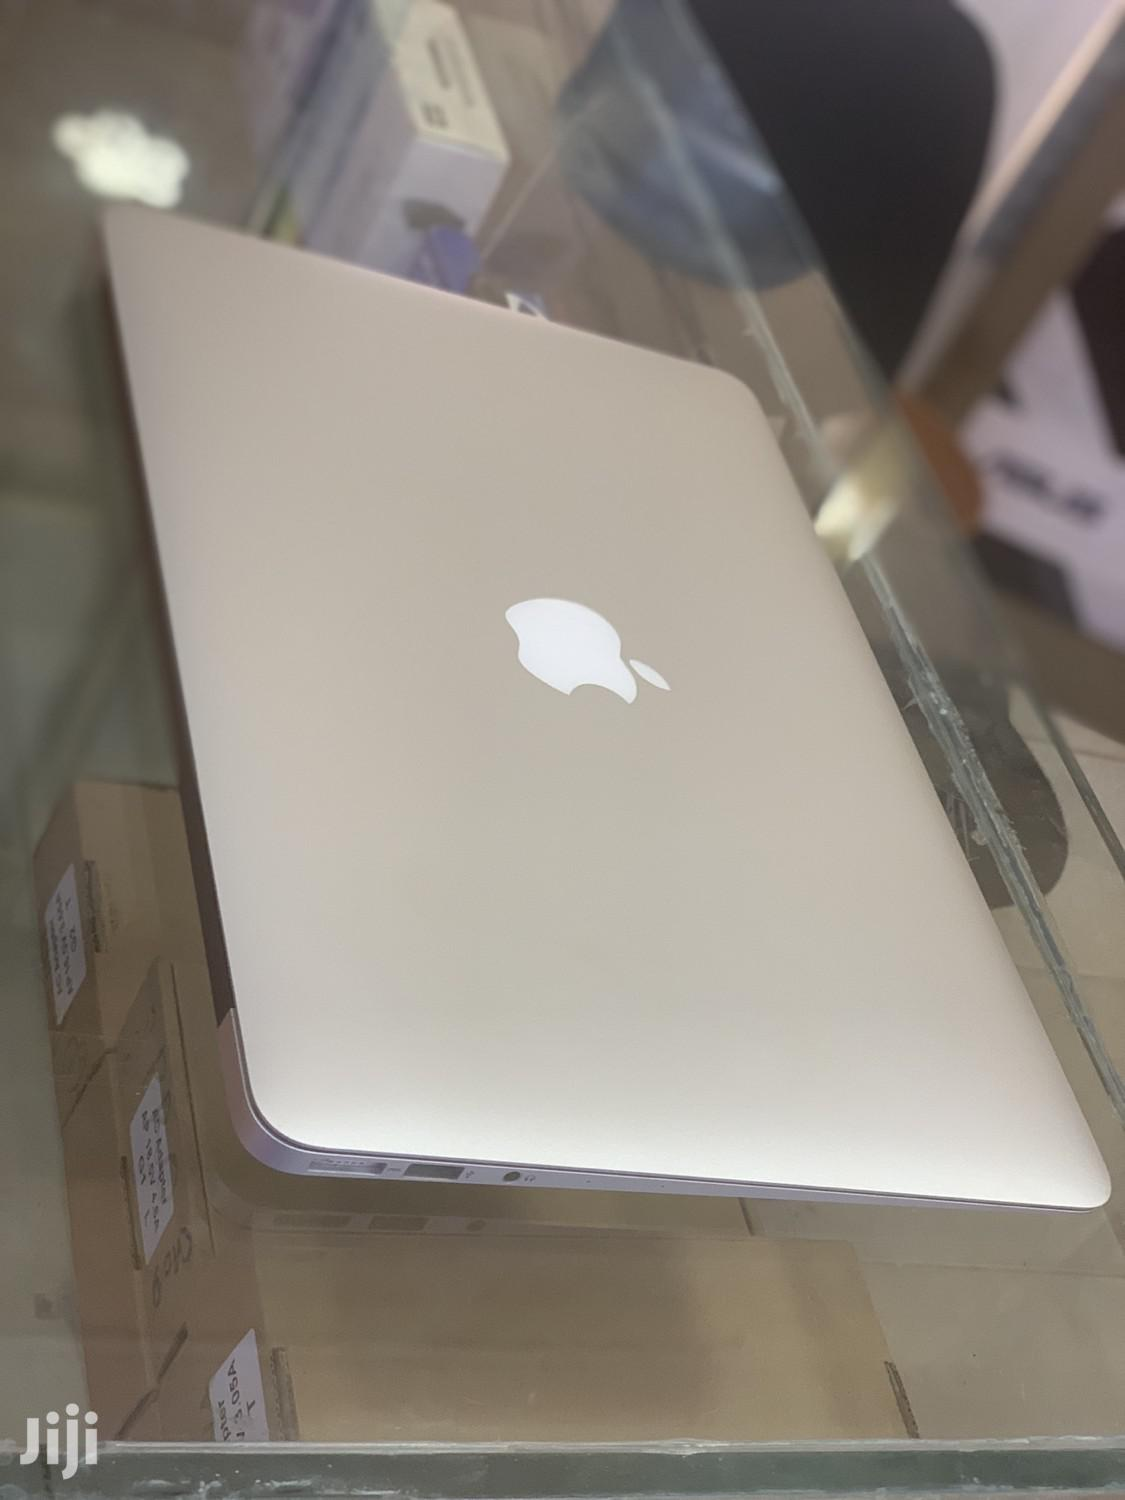 Laptop Apple MacBook Air 8GB Intel Core I5 SSHD (Hybrid) 128GB | Laptops & Computers for sale in Kampala, Central Region, Uganda